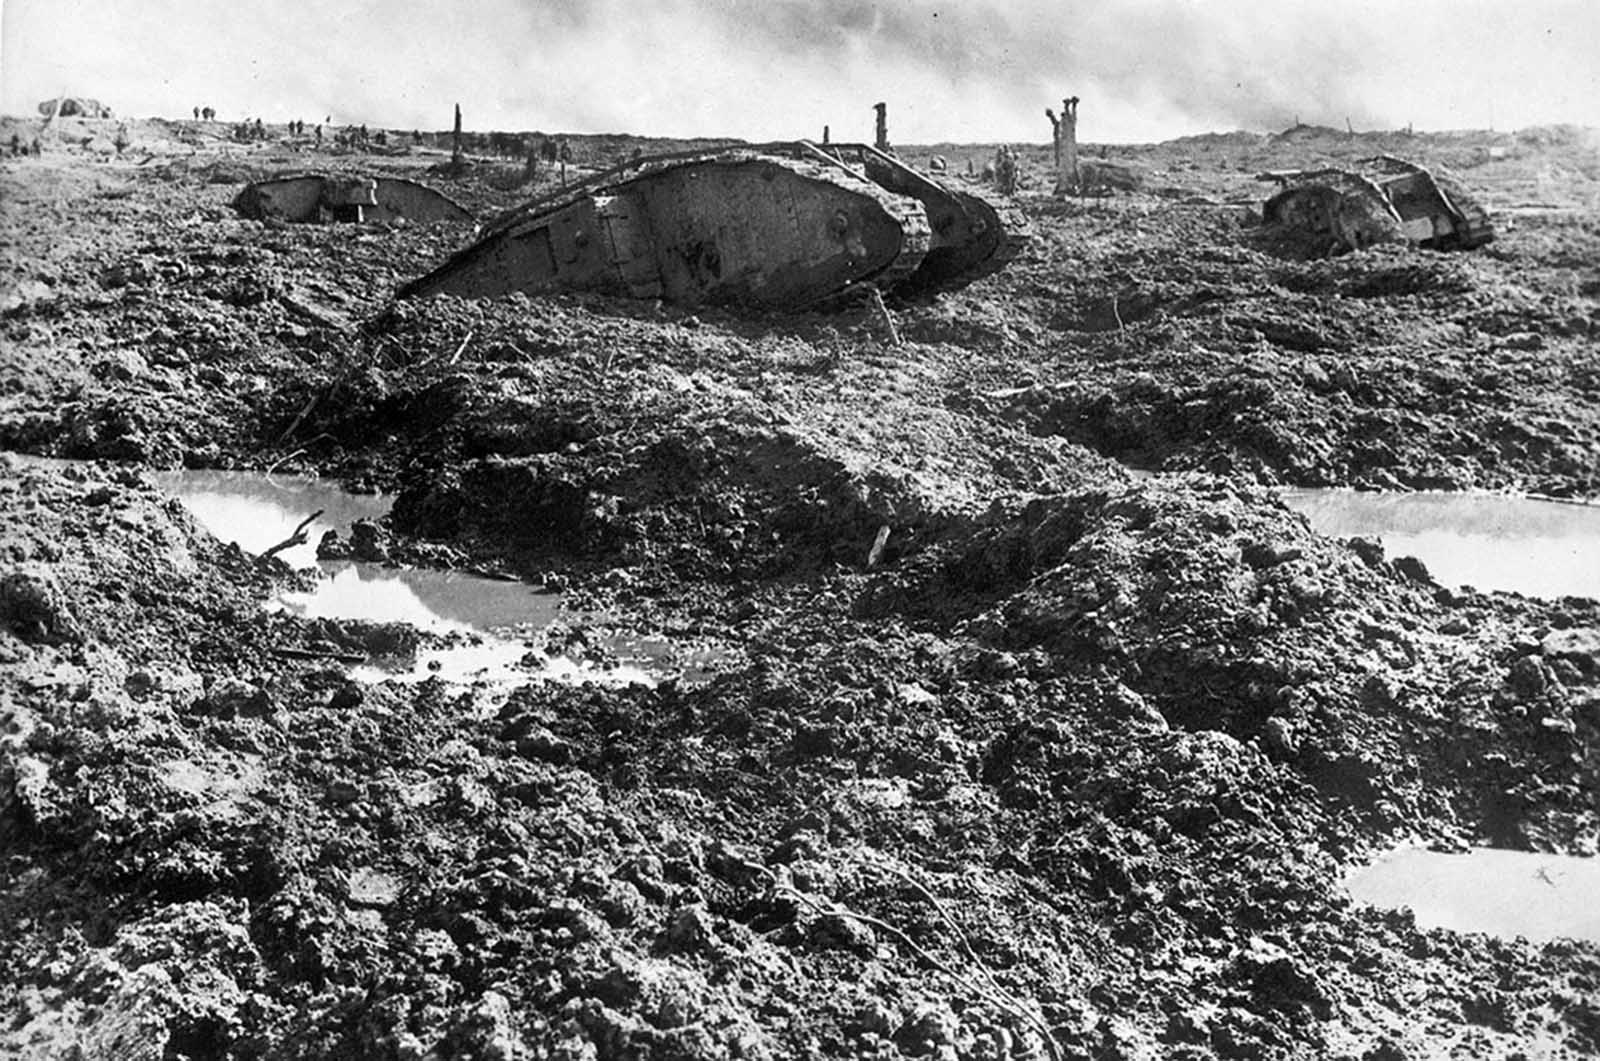 Derelict tanks lie strewn about a chaotic battlefield at Clapham Junction, Ypres, Belgium, ca. 1918.